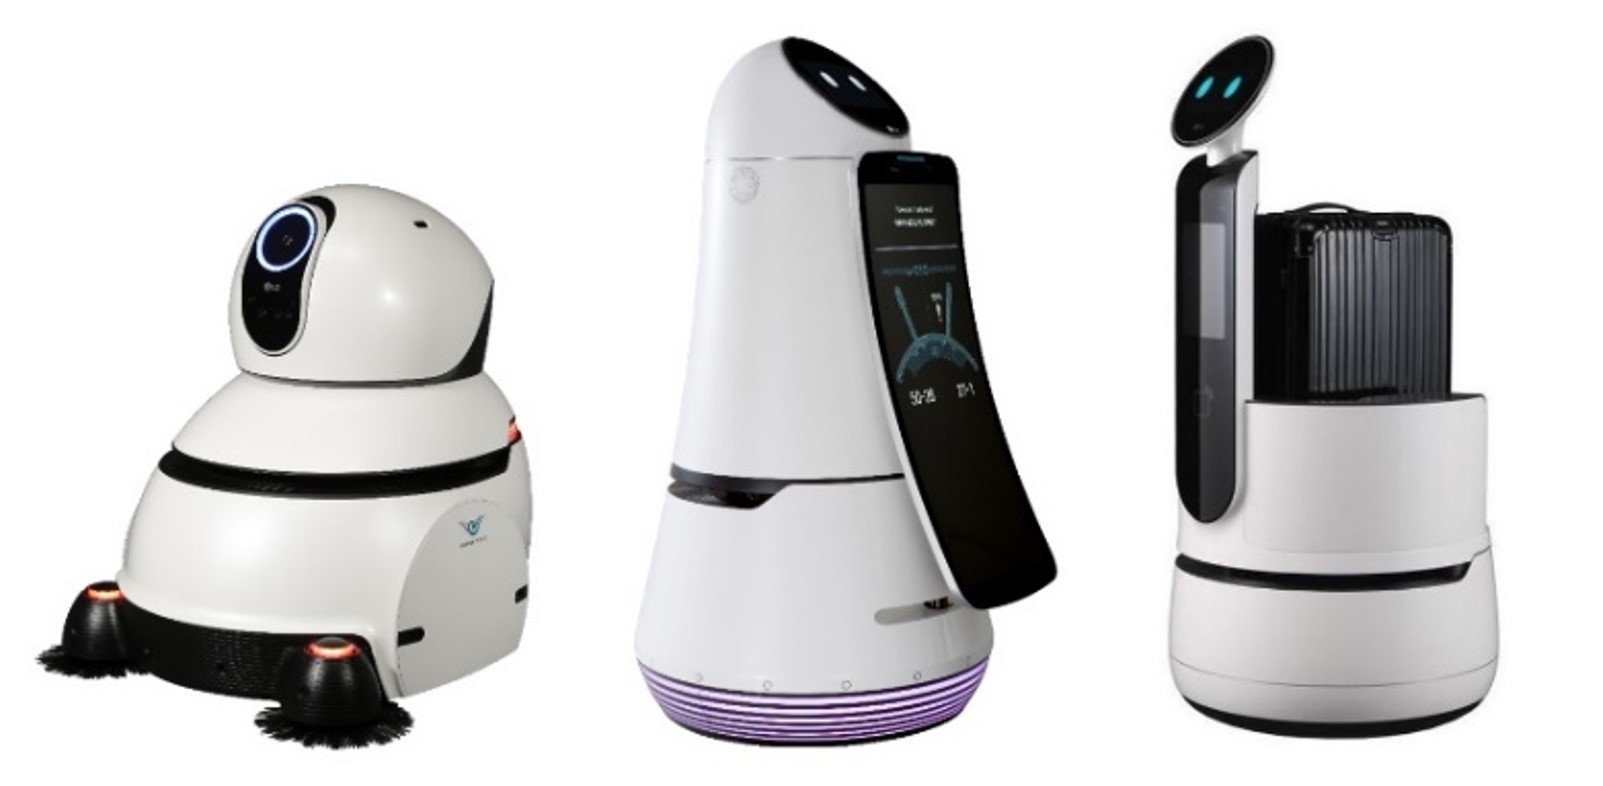 LG's commercial robots – the Cleaning Robot, Airport Guide Robot and Porter Robot